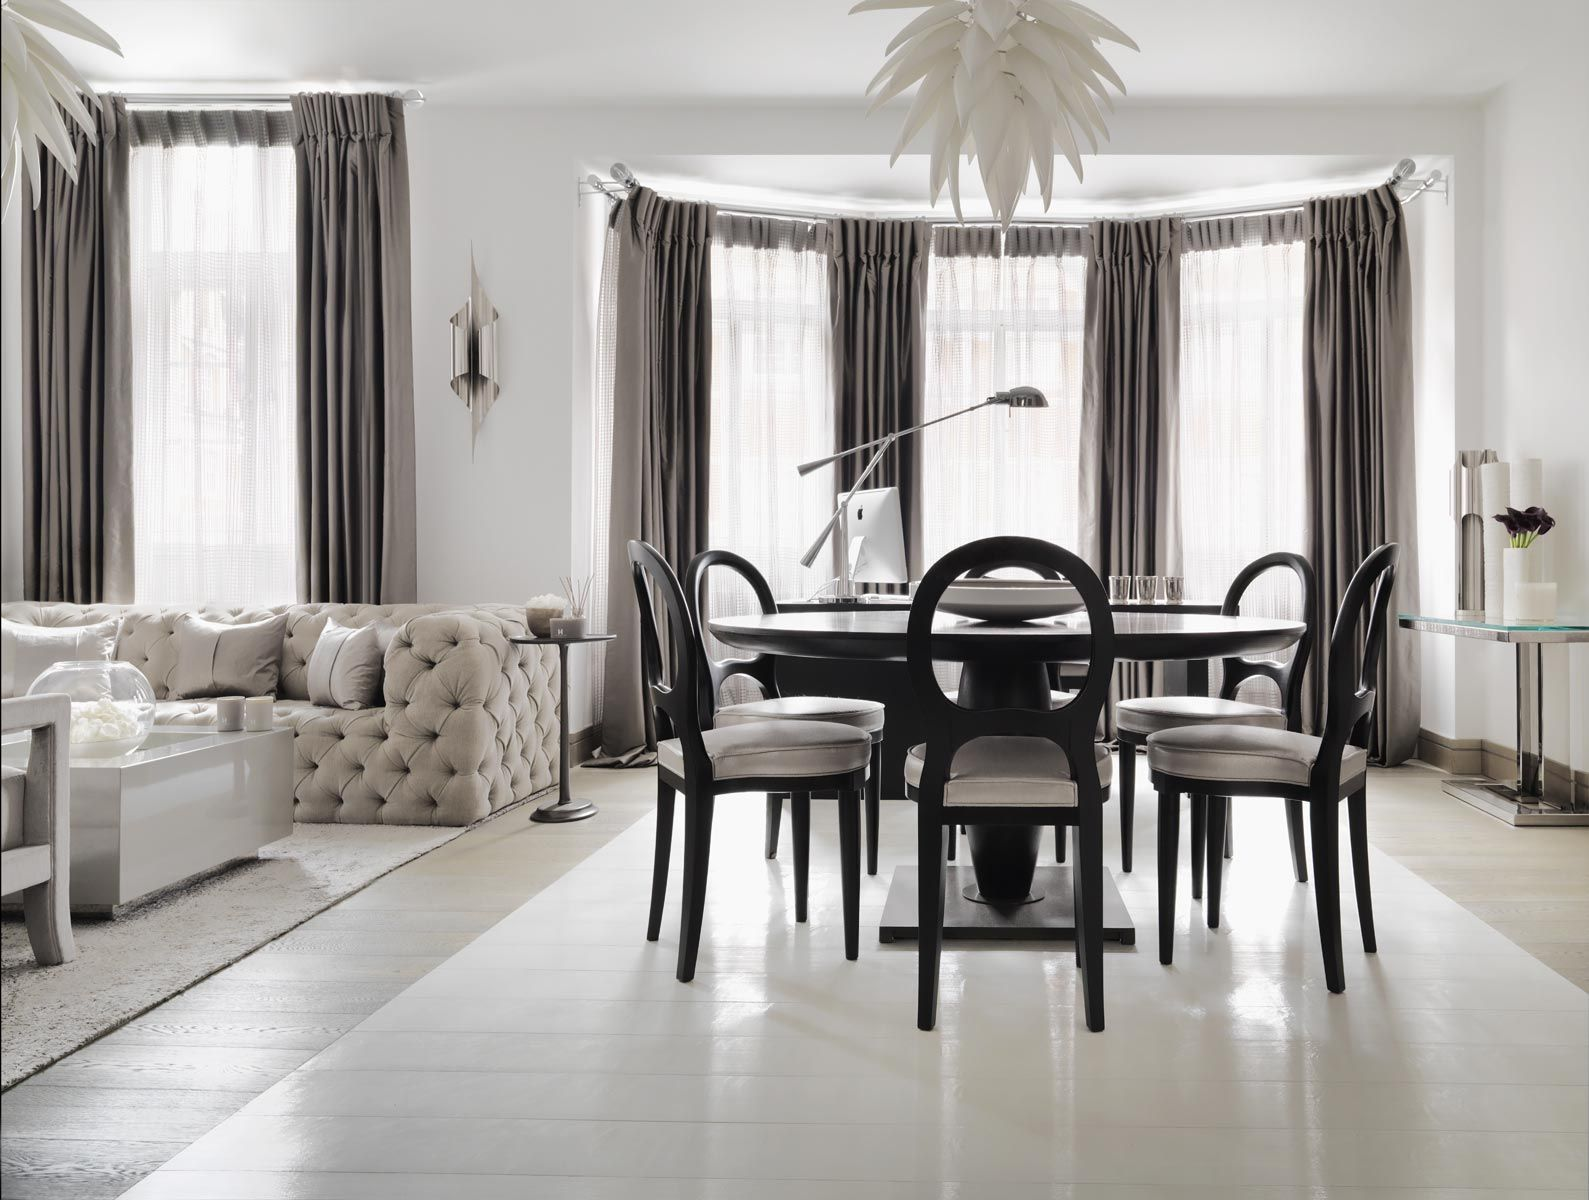 Curtain designs living room - Find This Pin And More On Kelly Hoppen Design Inspiration